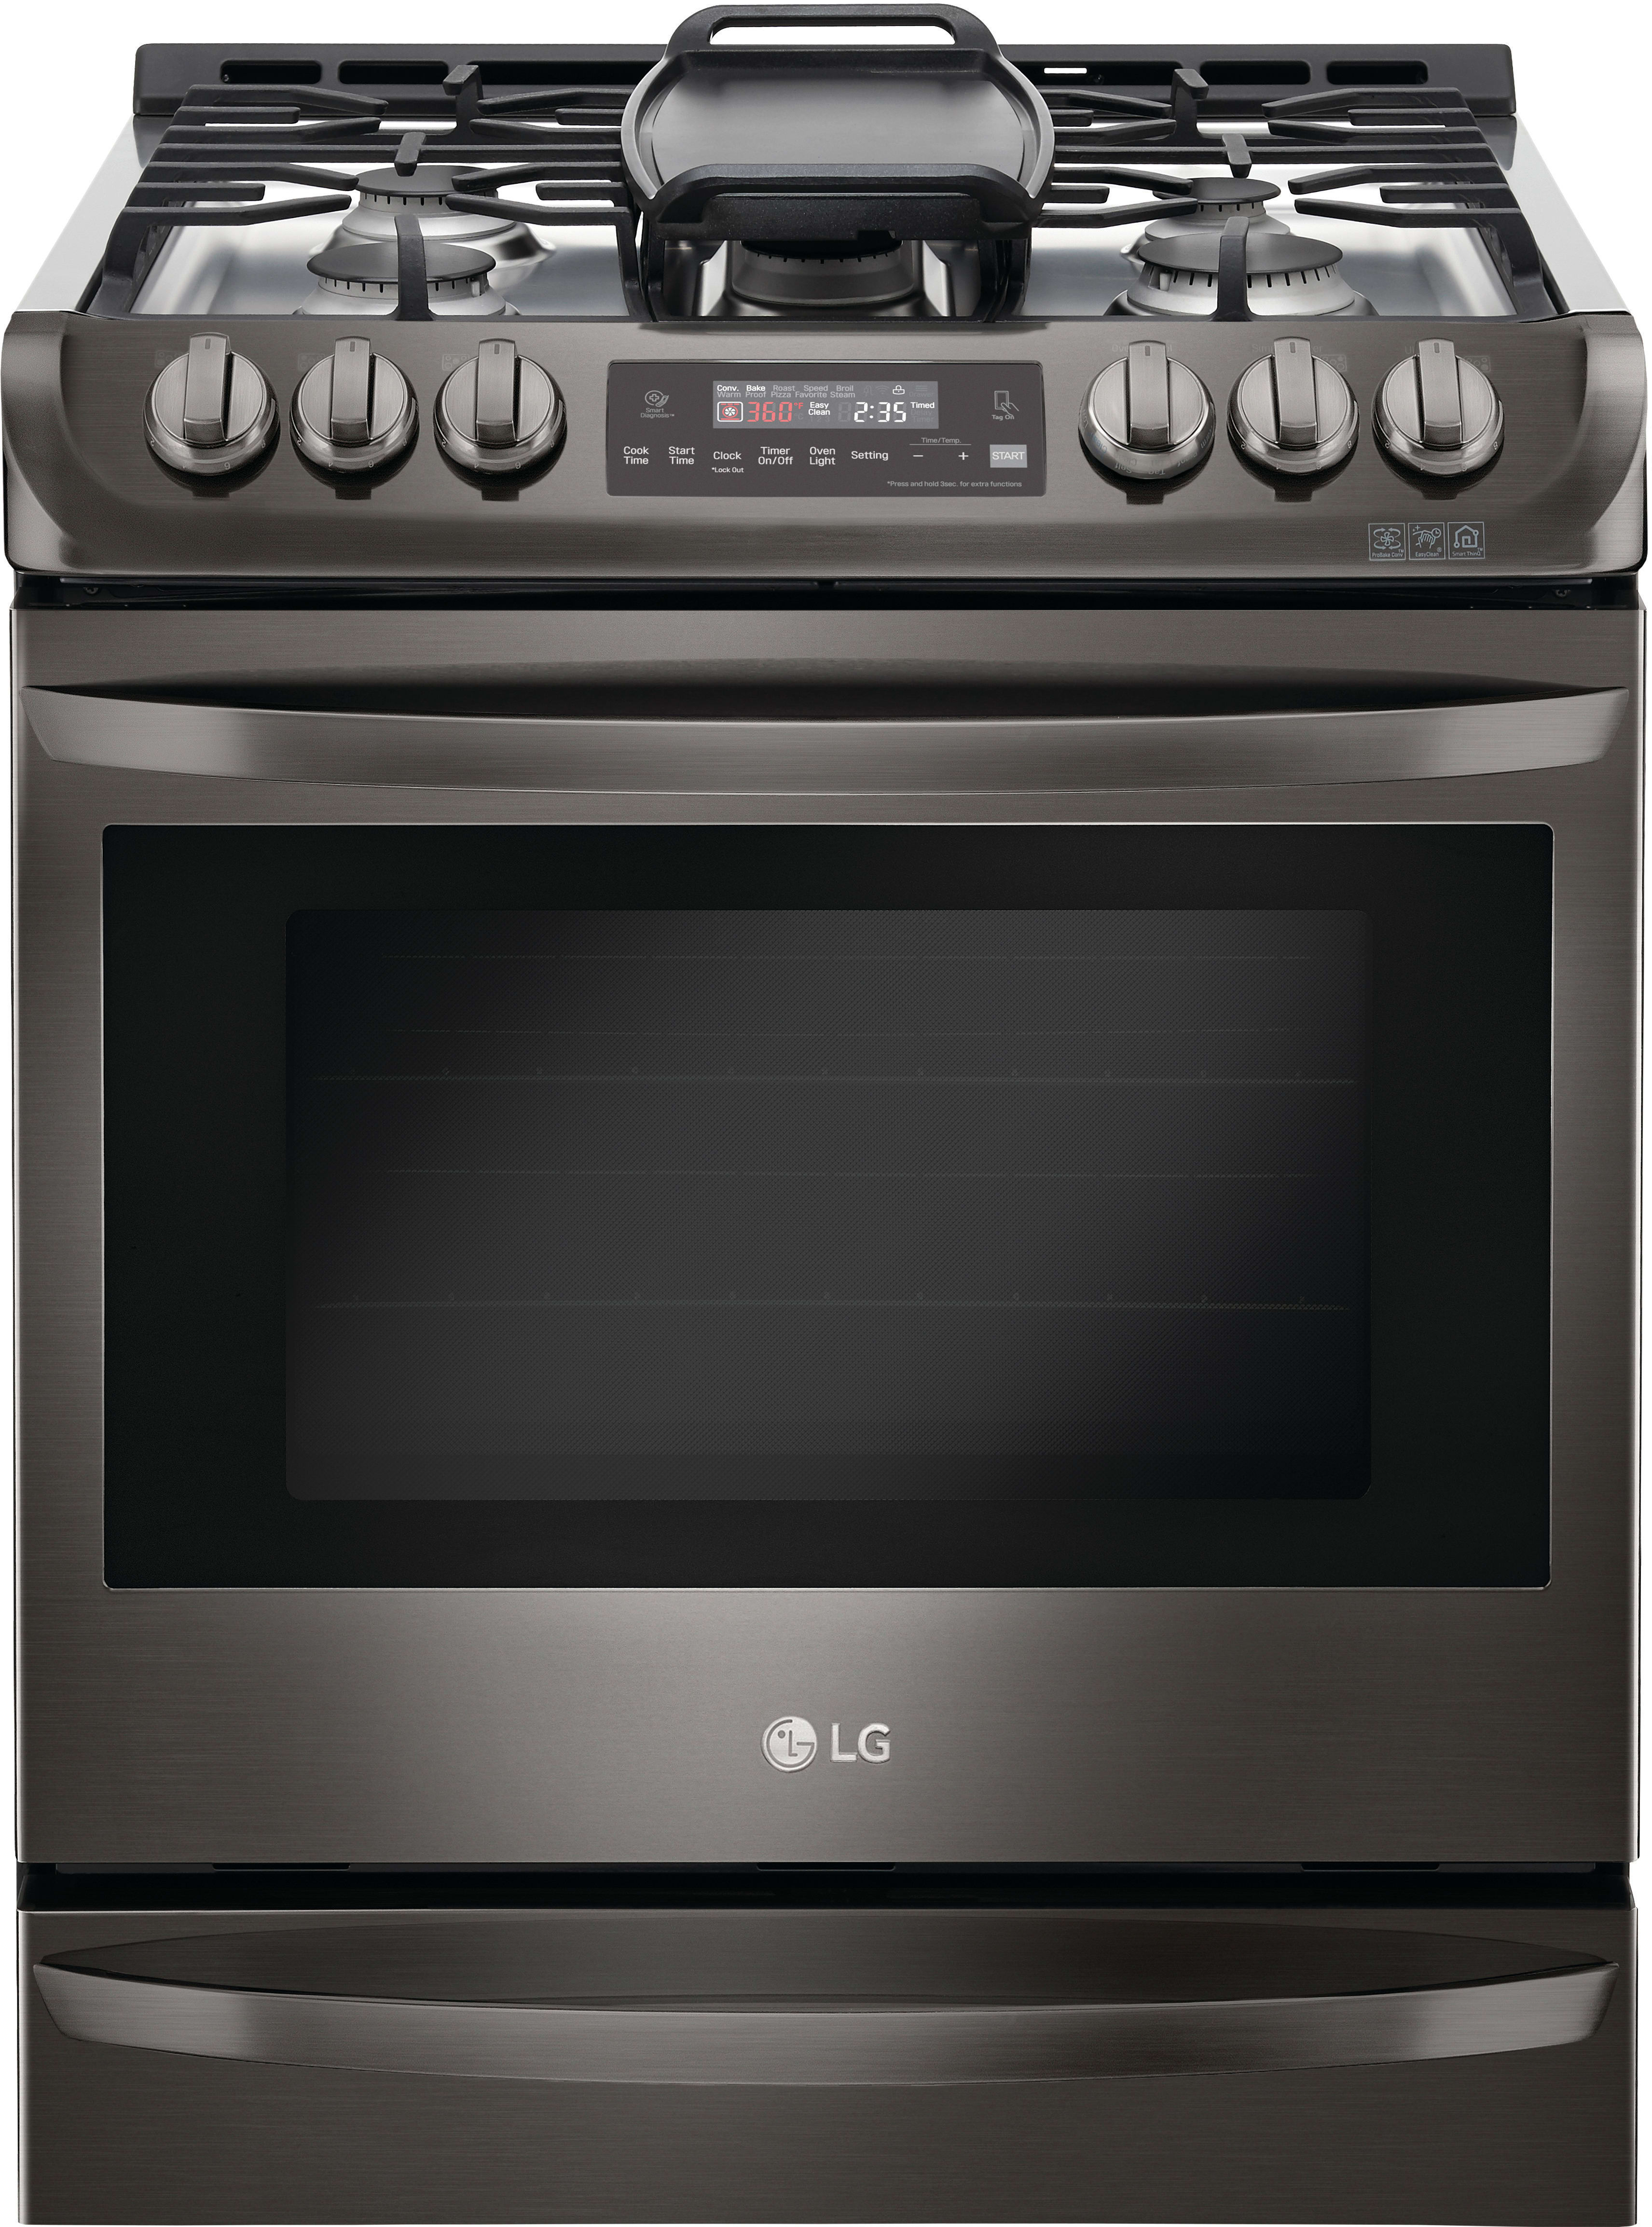 Lg Lsg4513bd 30 Inch Slide In Gas Range With Convection